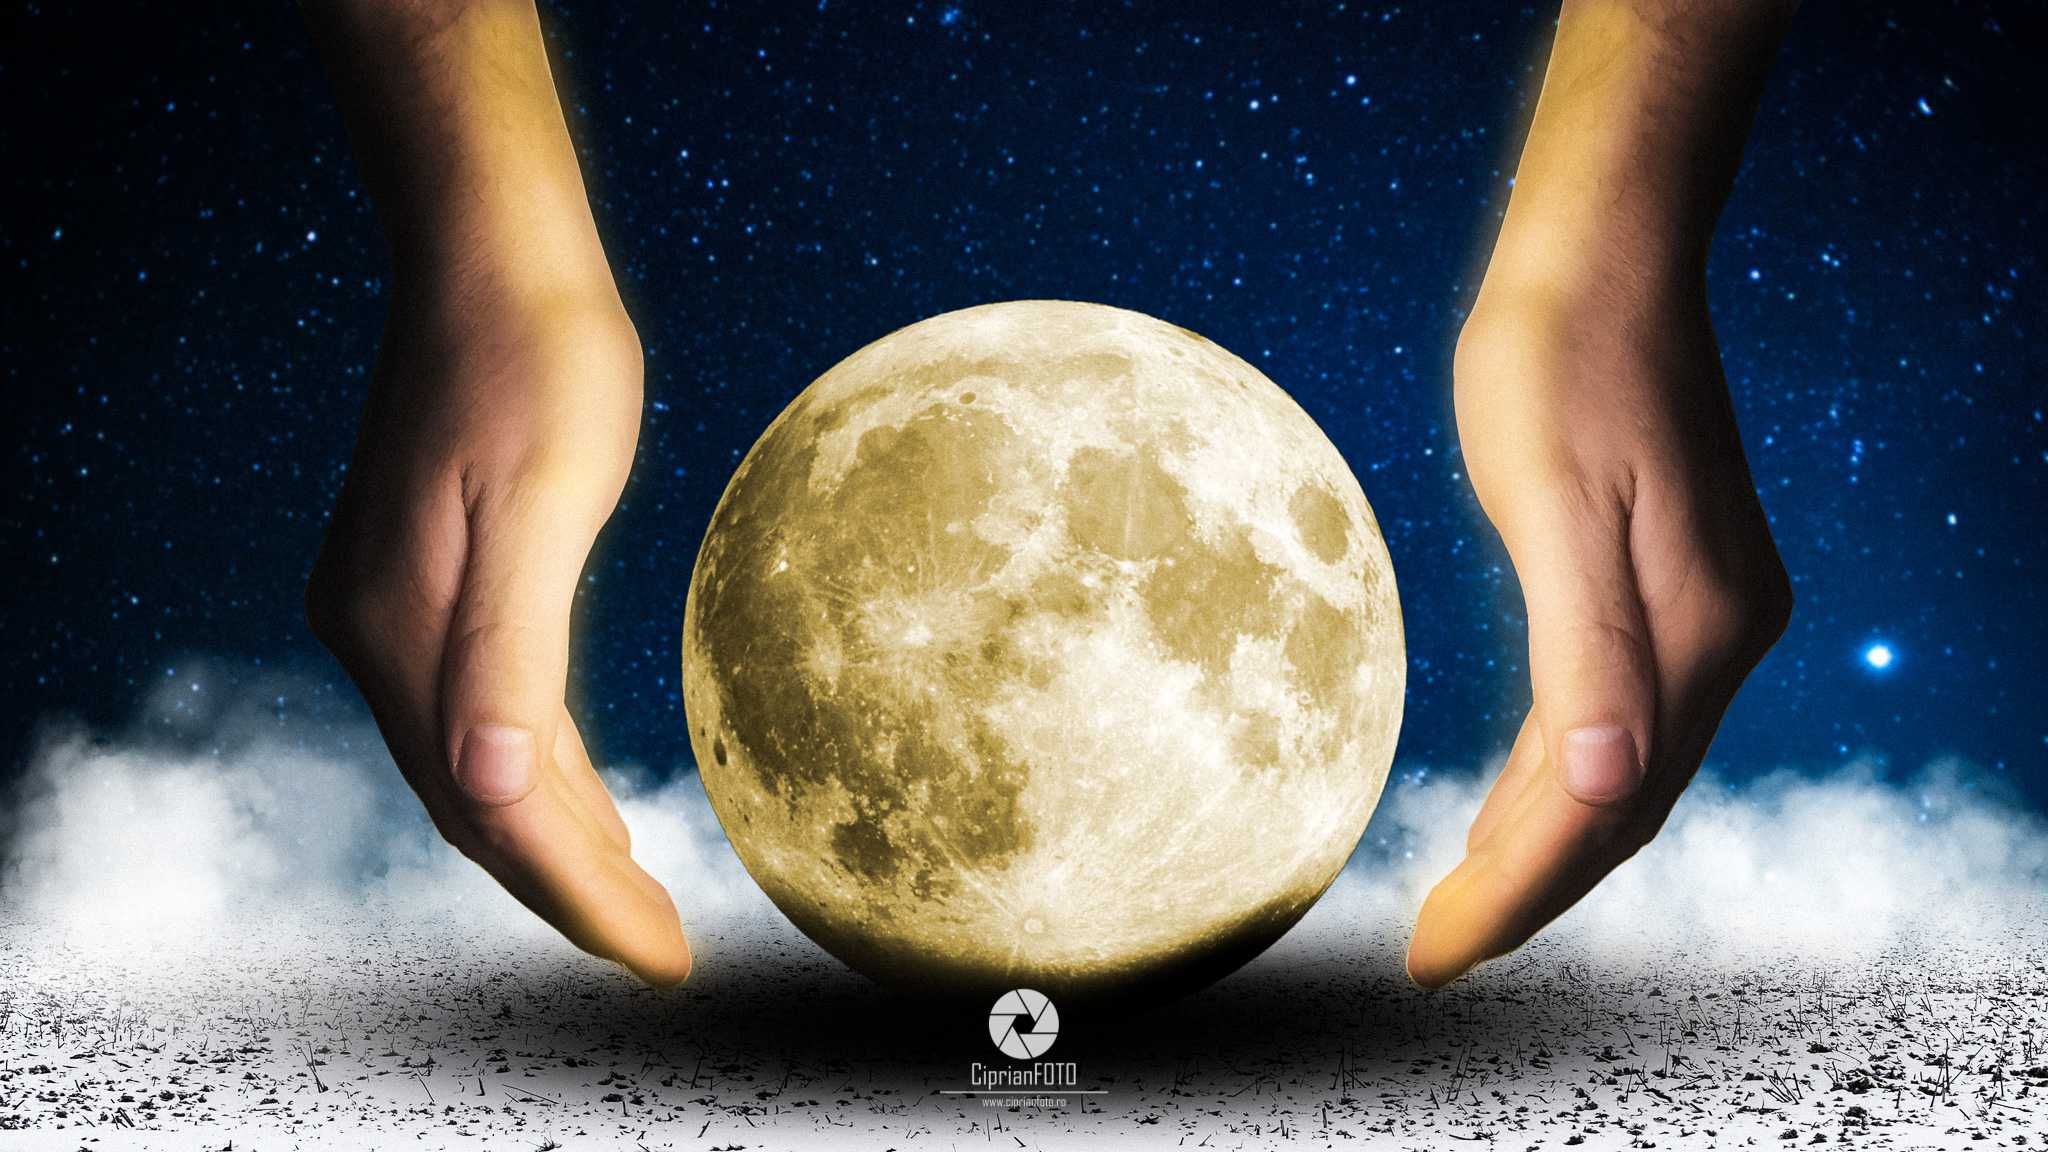 Full_Moon_On_Land_Photoshop_Manipulation_Tutorial_CiprianFOTO